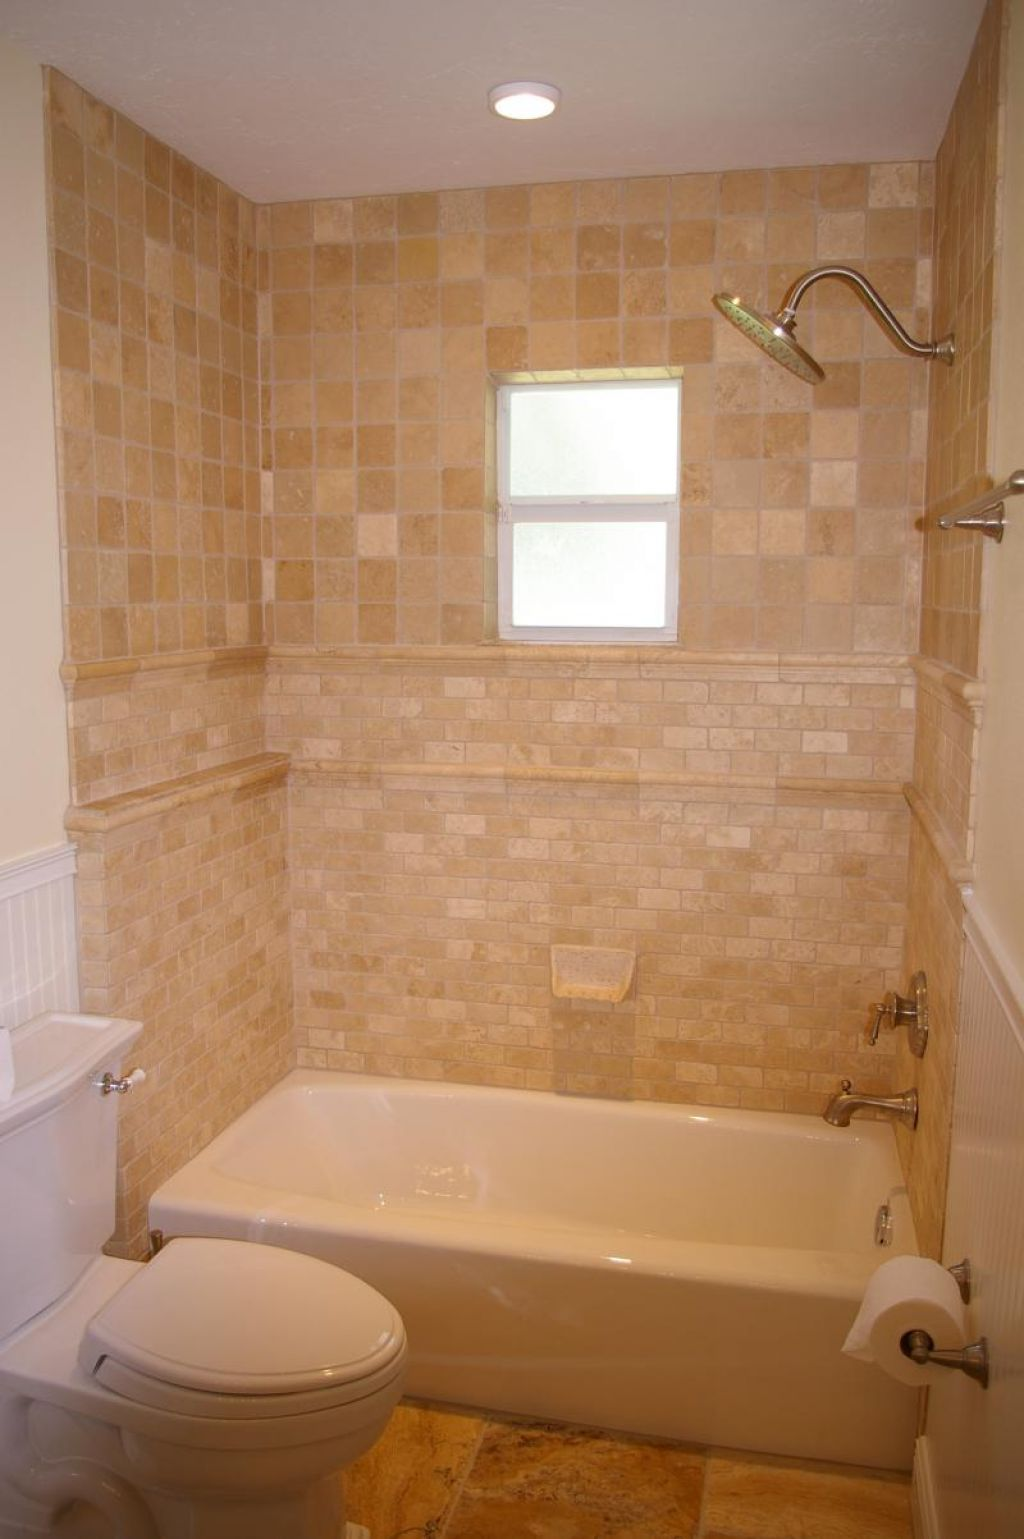 30 shower tile ideas on a budget for Tub remodel